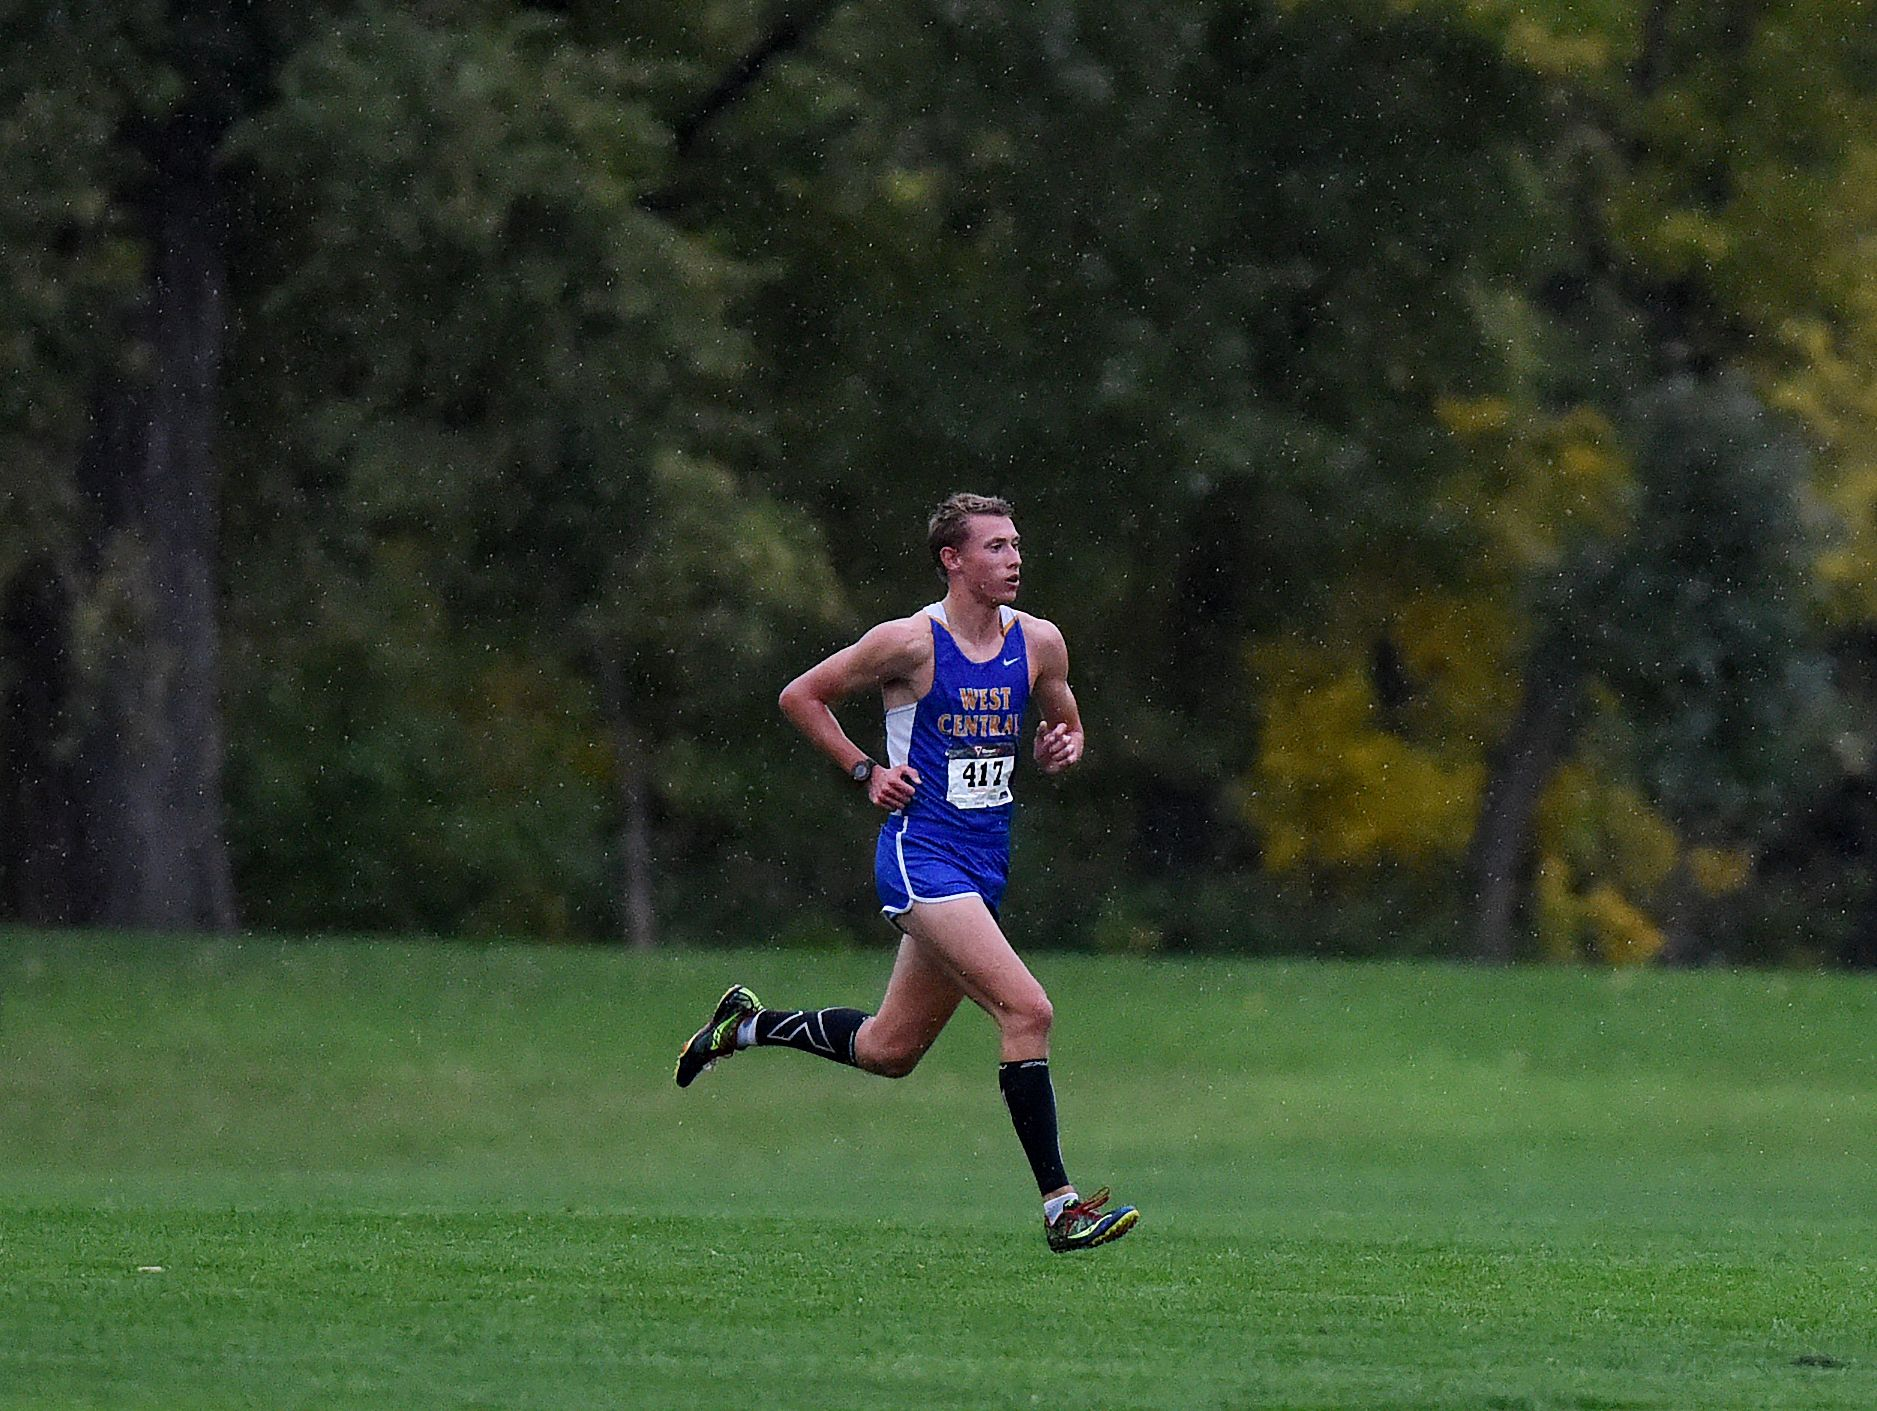 West Central's Derick Peters leads the way the Dakota XII Conference Meet at Yankton Trail Park on Thursday.